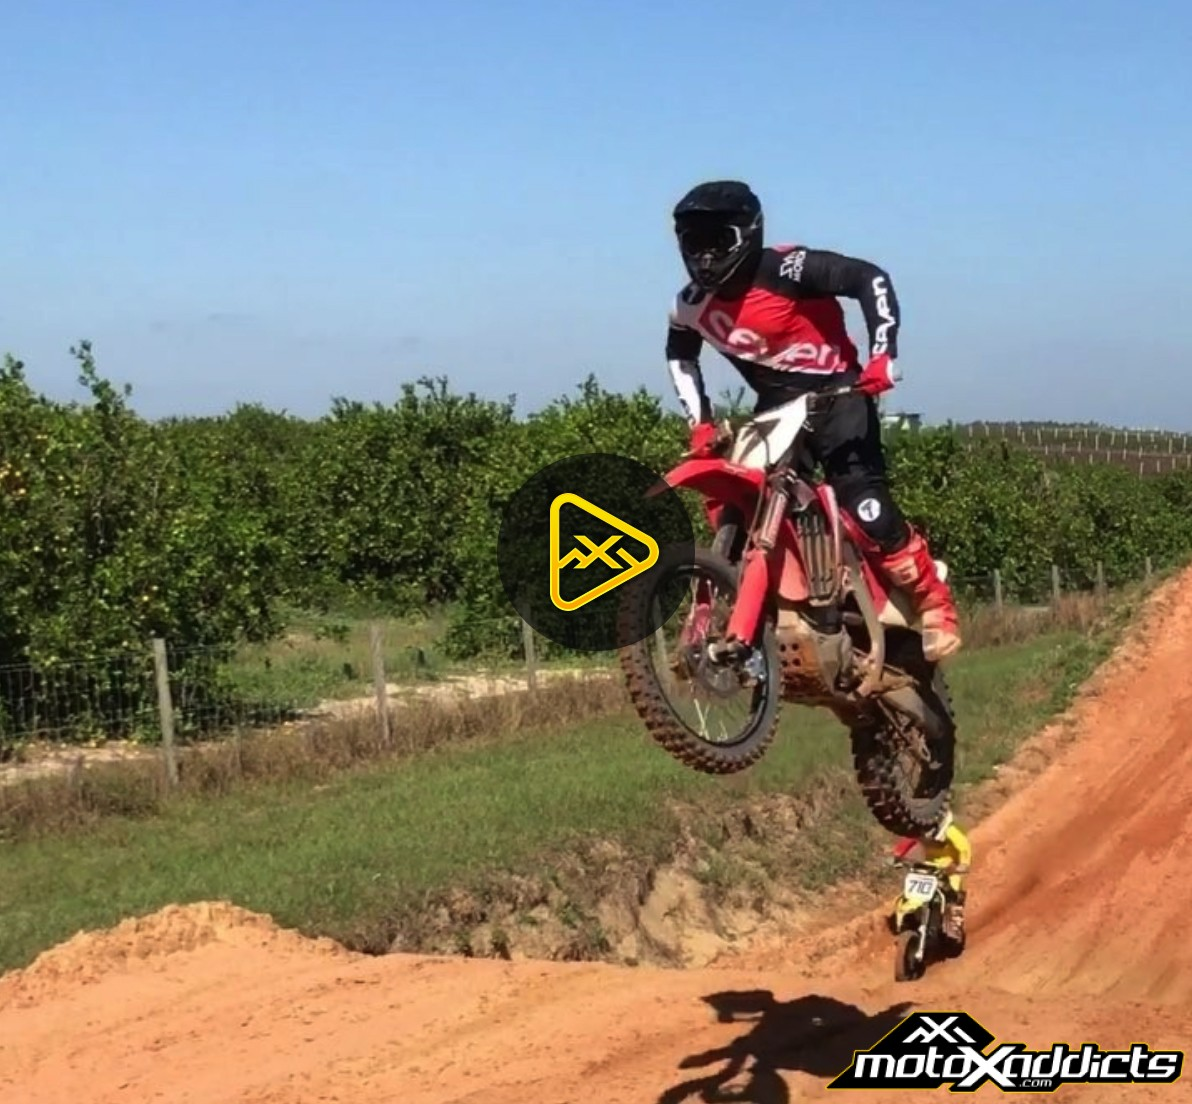 Video of James Stewart Spotted Riding a Honda